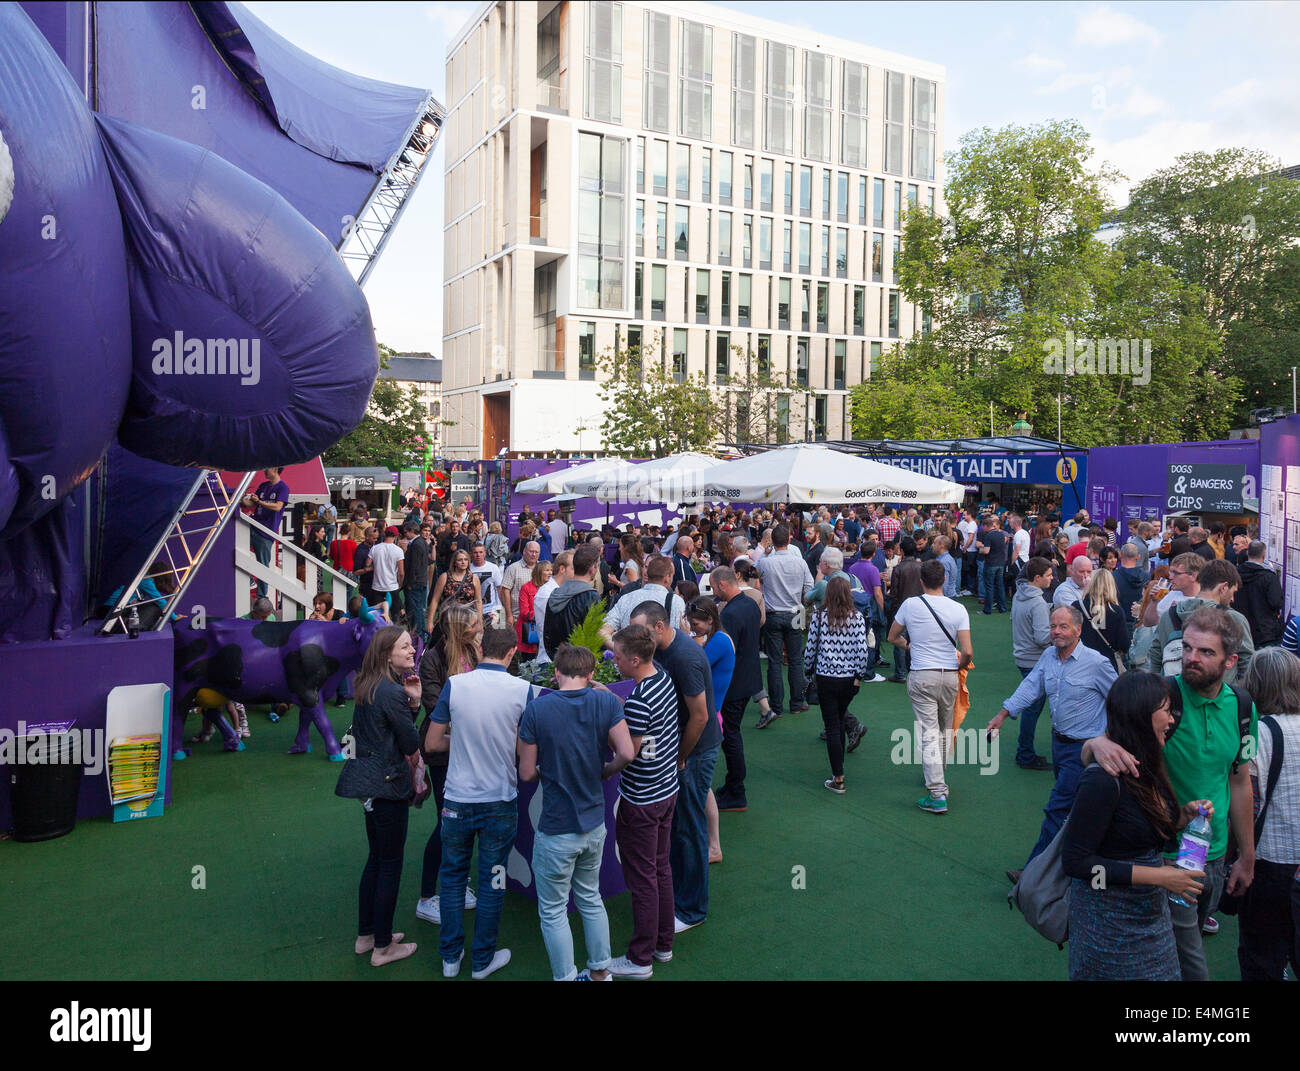 The Pasture, an outdoor eating and drinking venue adjacent to the Udderbelly purple tent cow during Edinburgh Festival - Stock Image